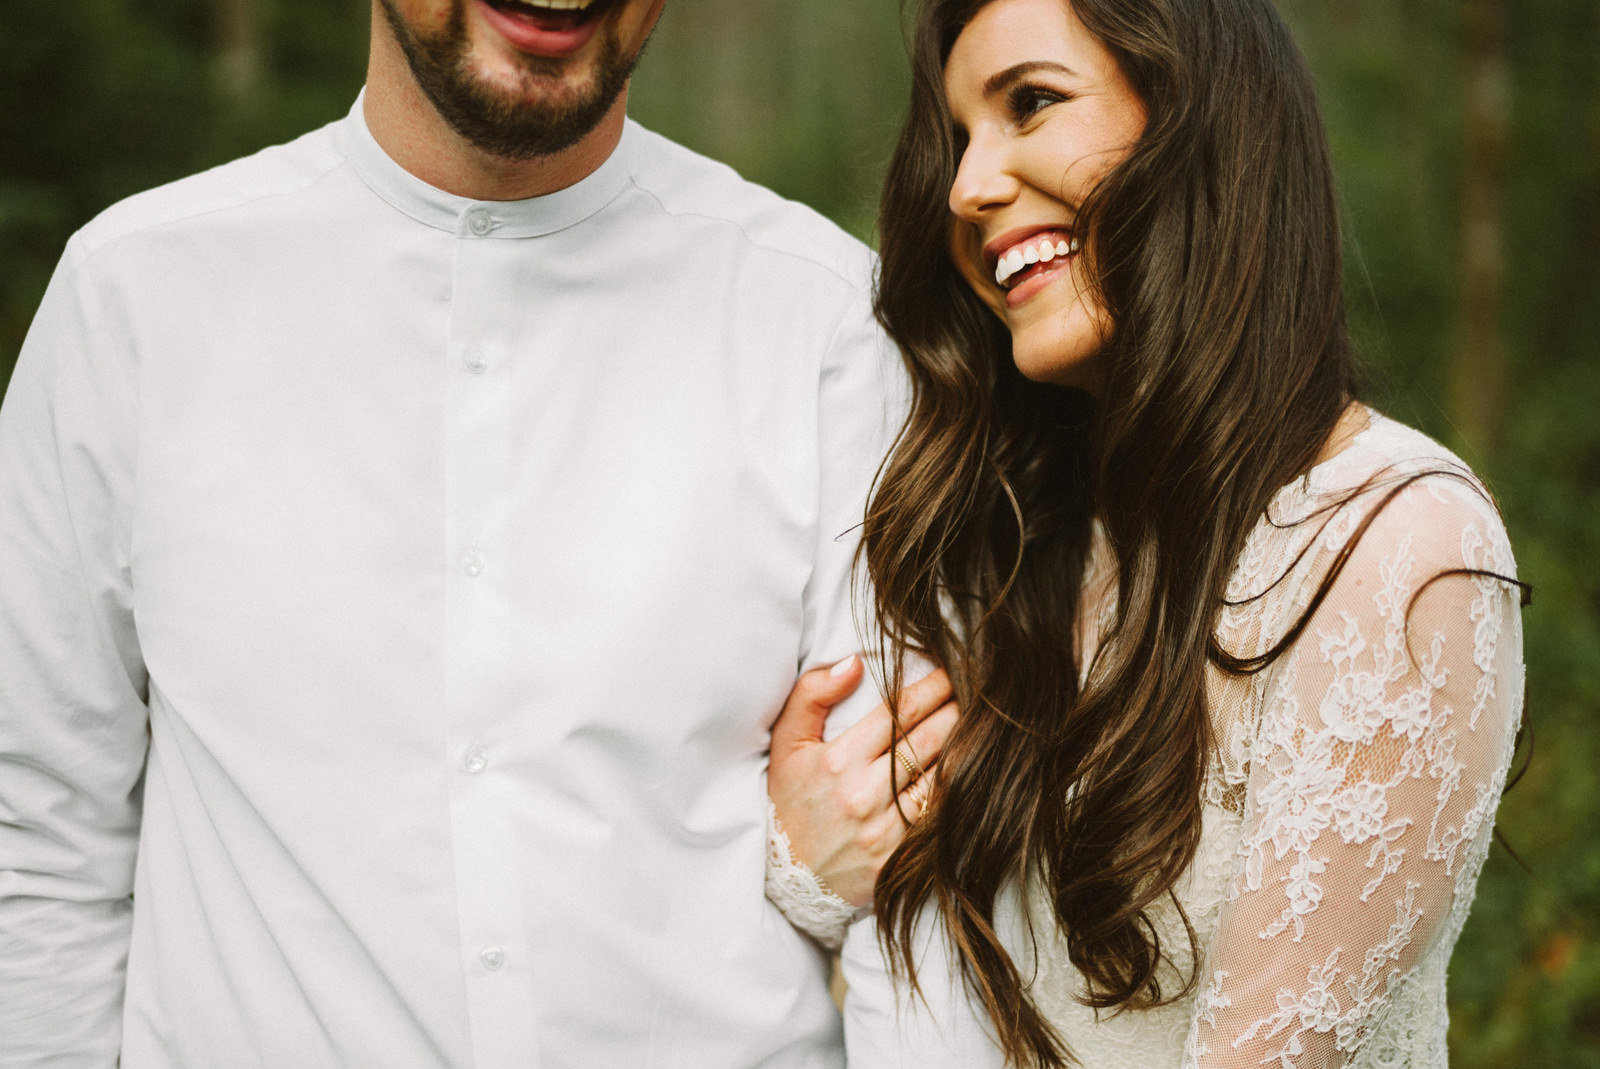 athena-and-camron-seattle-elopement-wedding-benj-haisch-rattlesnake-lake-christian-couple-goals12